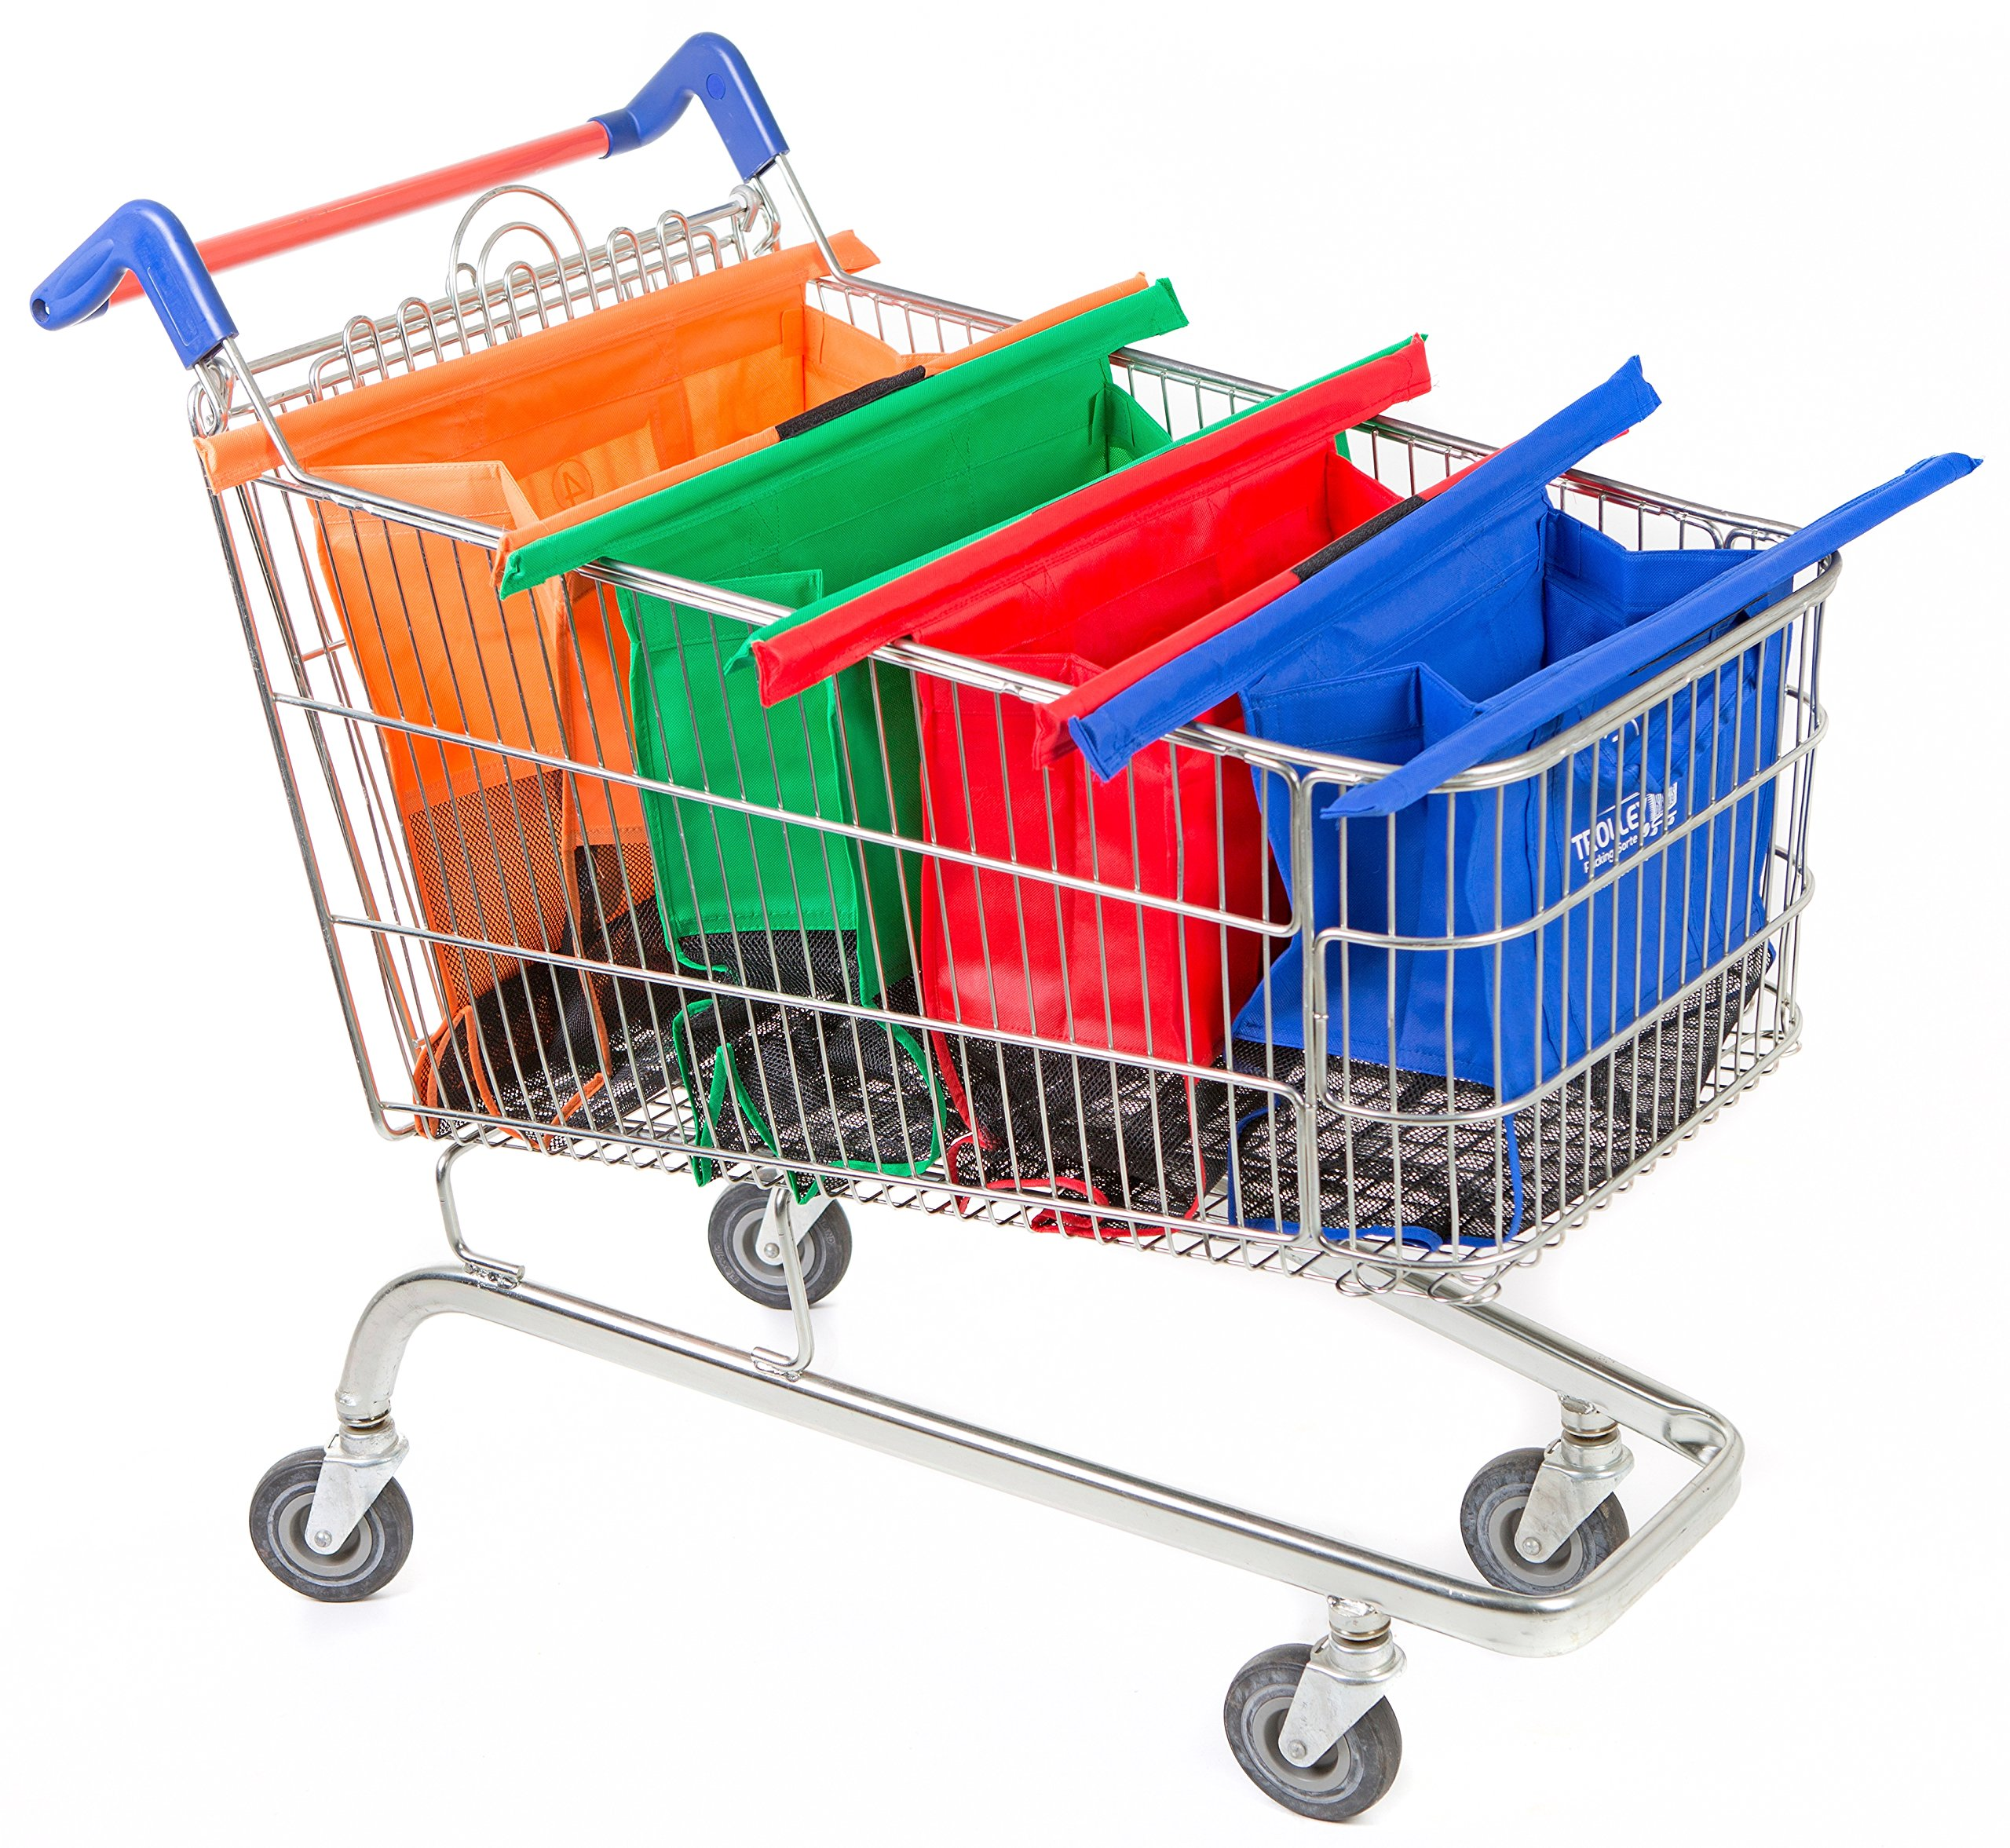 Trolley Bags Reusable Grocery Cart Wide Original Shopping Bags by Trolley Bags